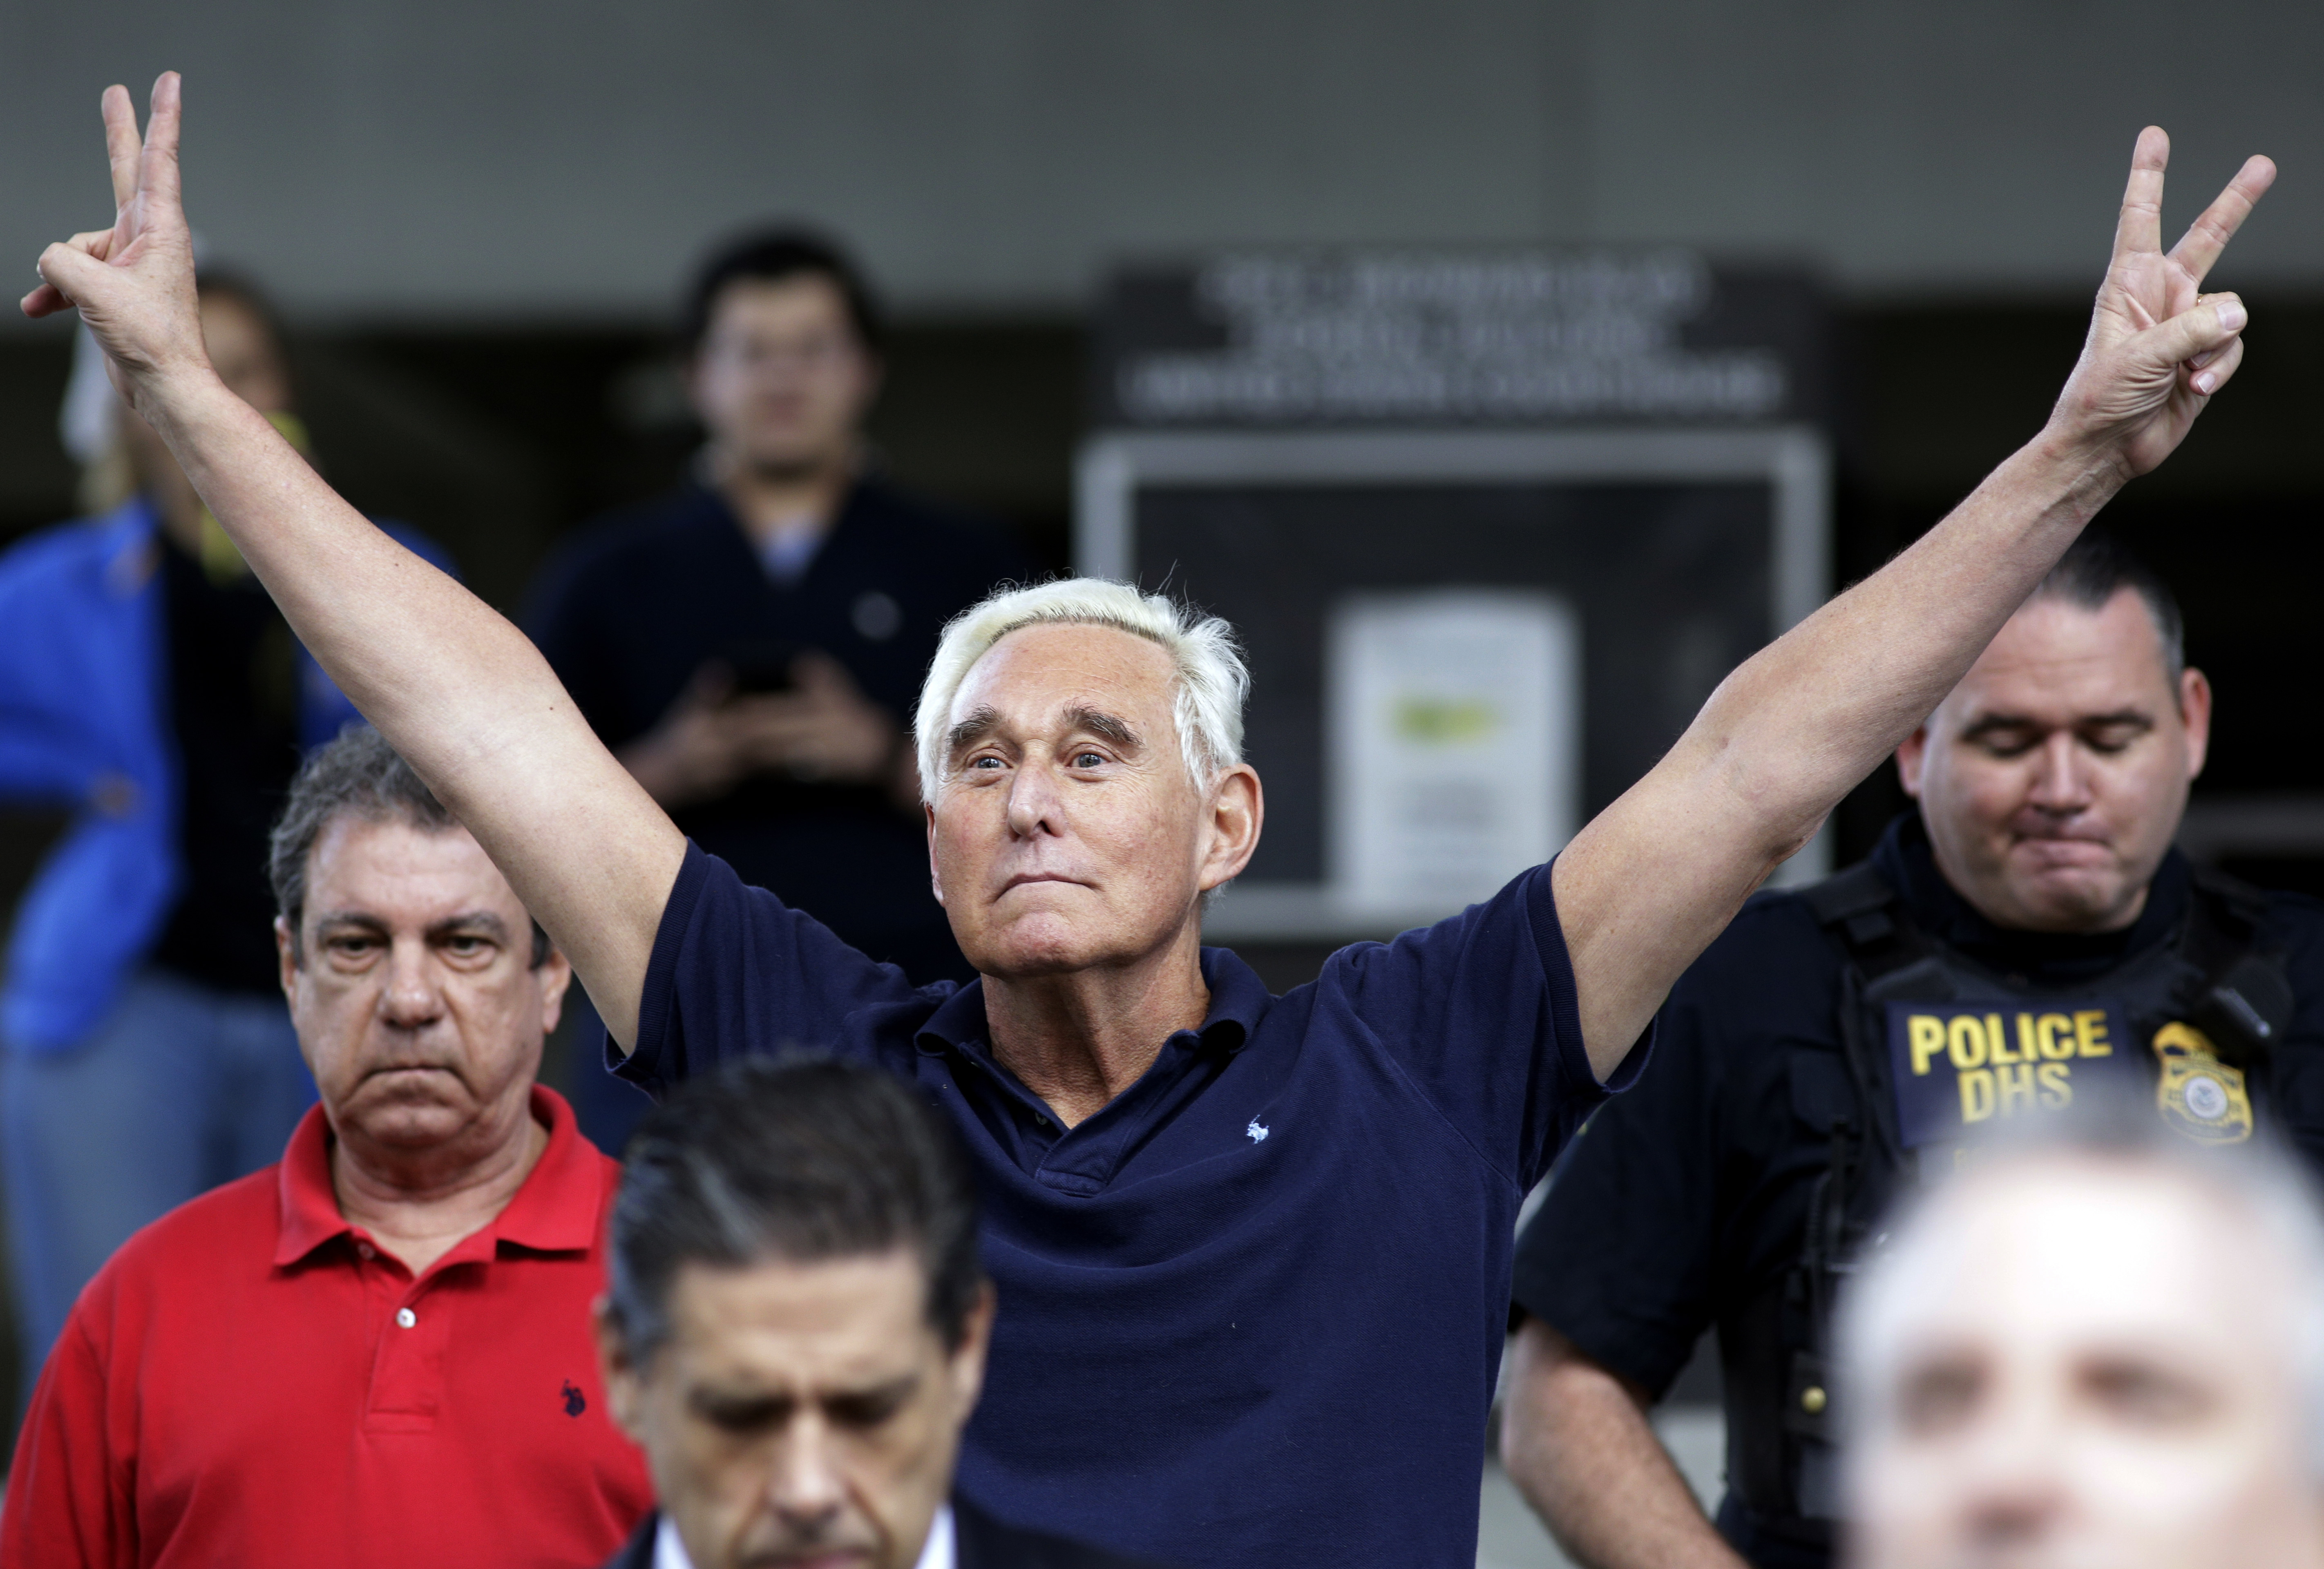 Roger Stone, 2016 campaign adviser for President Trump, walks out of the federal courthouse after his hearing Friday in Fort Lauderdale, Fla. Stone was arrested Friday in the special counsel's Russia investigation, charged with lying to Congress and obstructing the probe.